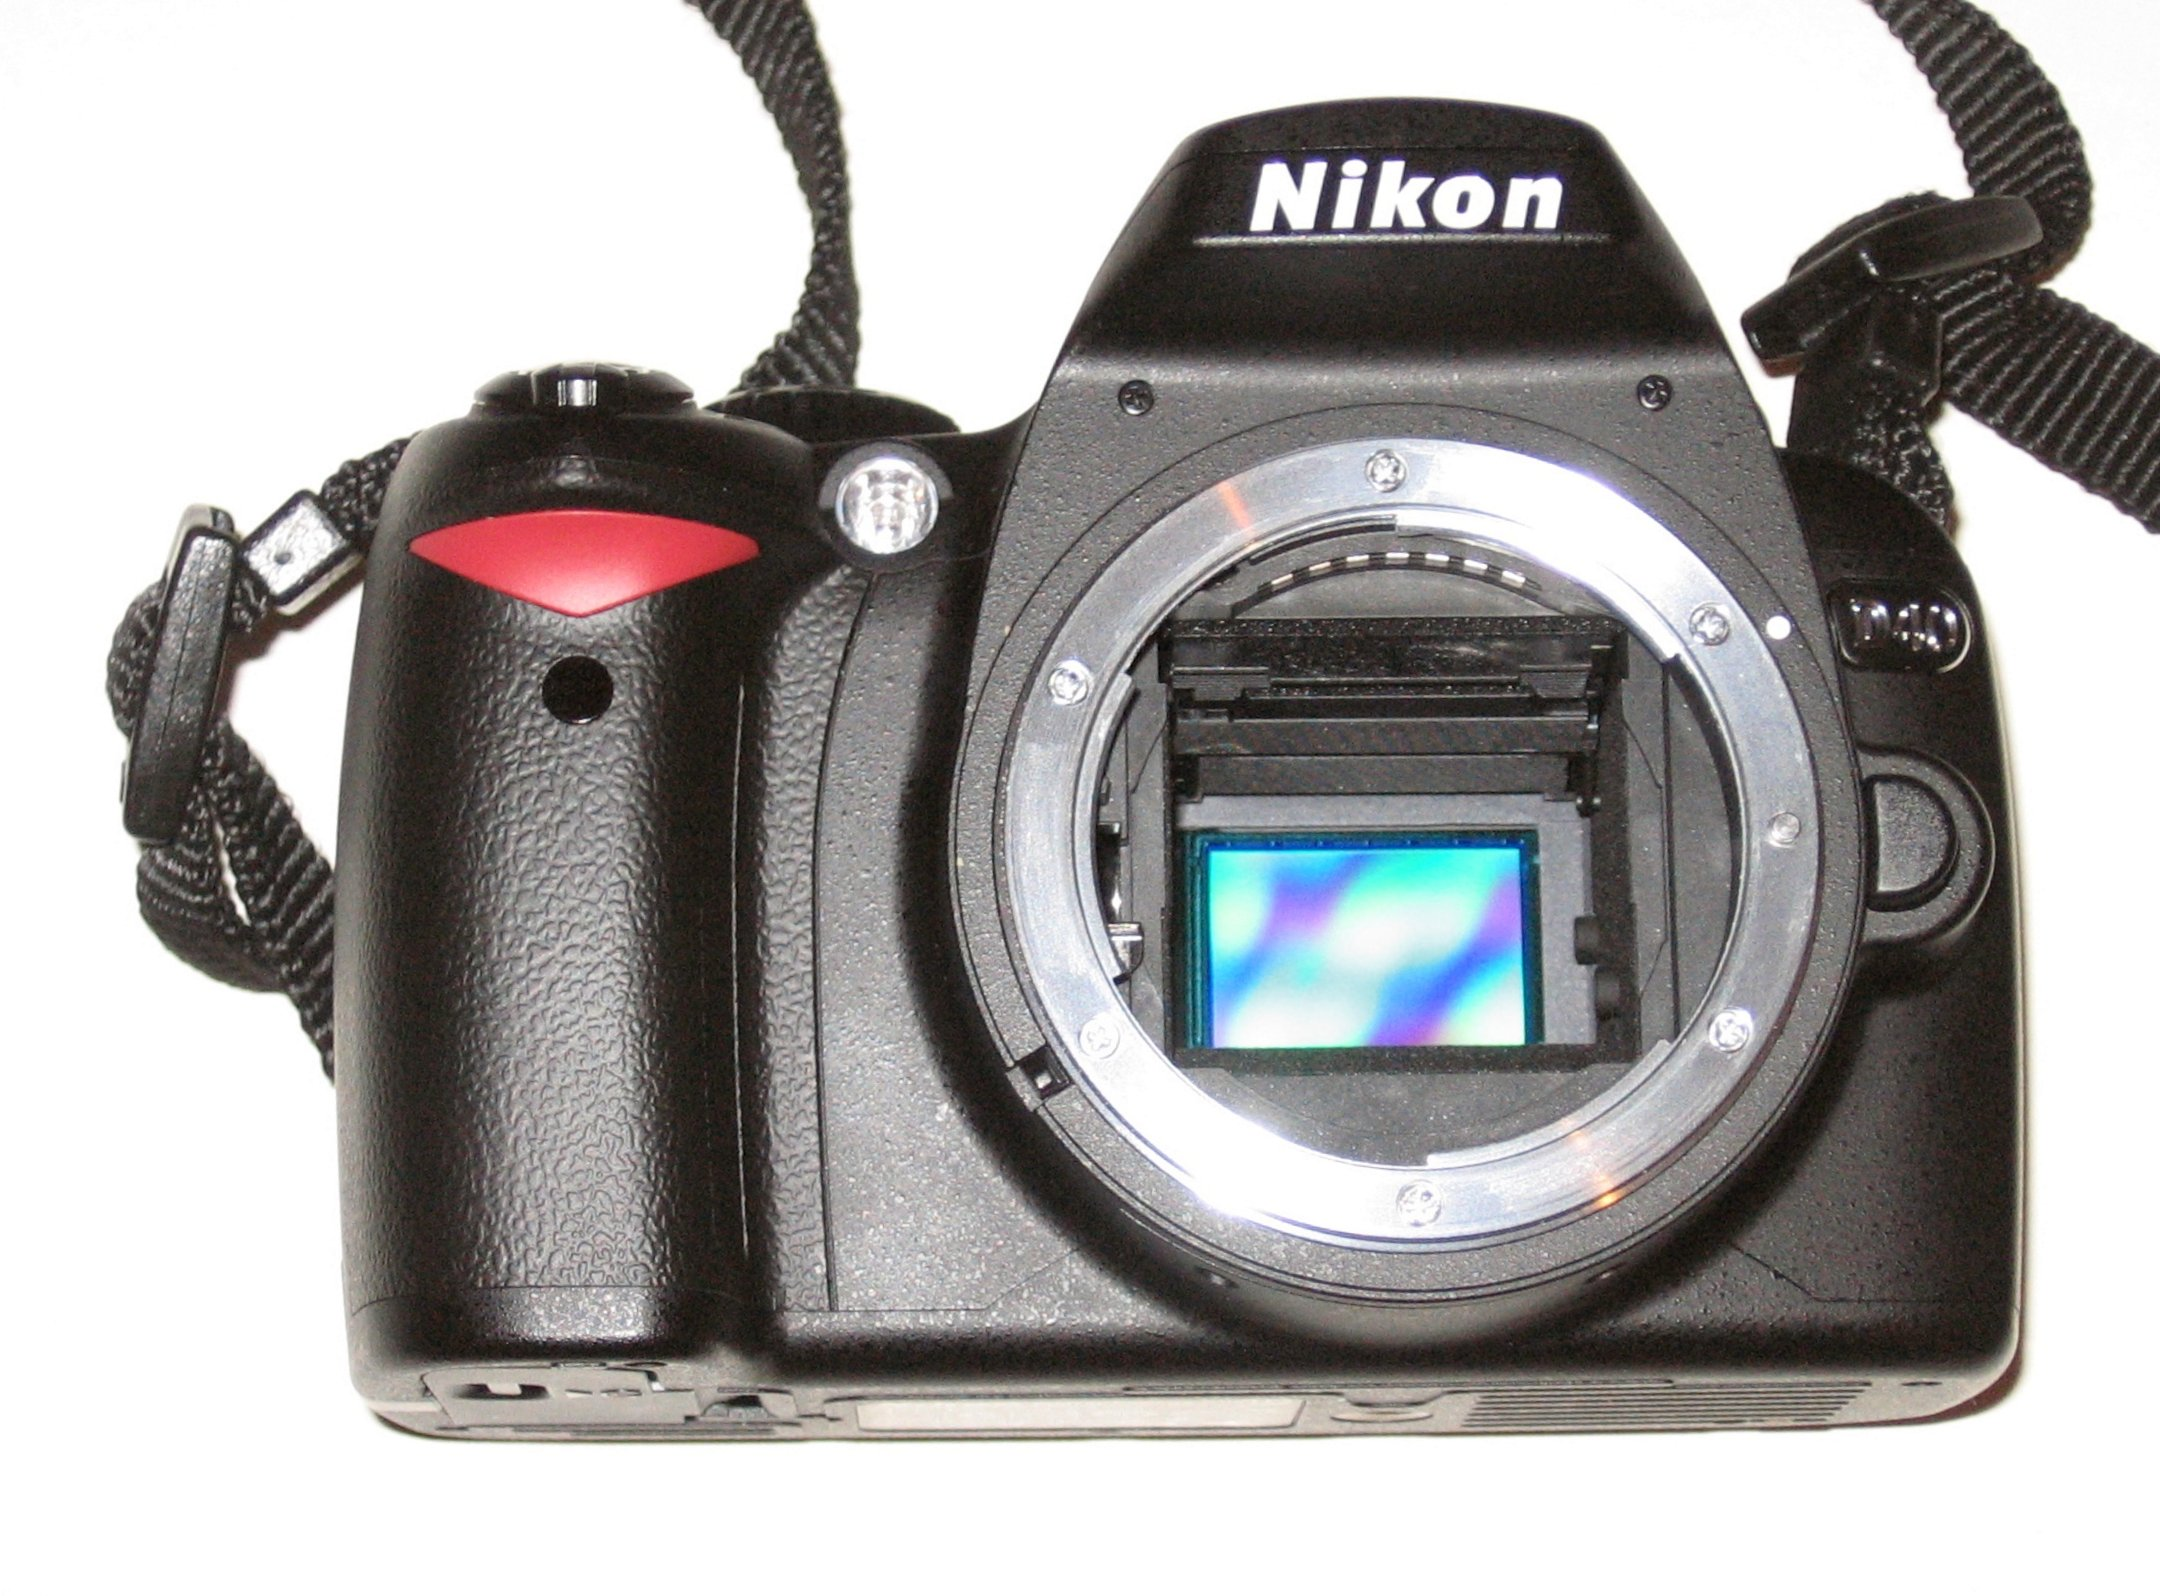 Nikon D40 digital SLR camera with visible CCD image sensor